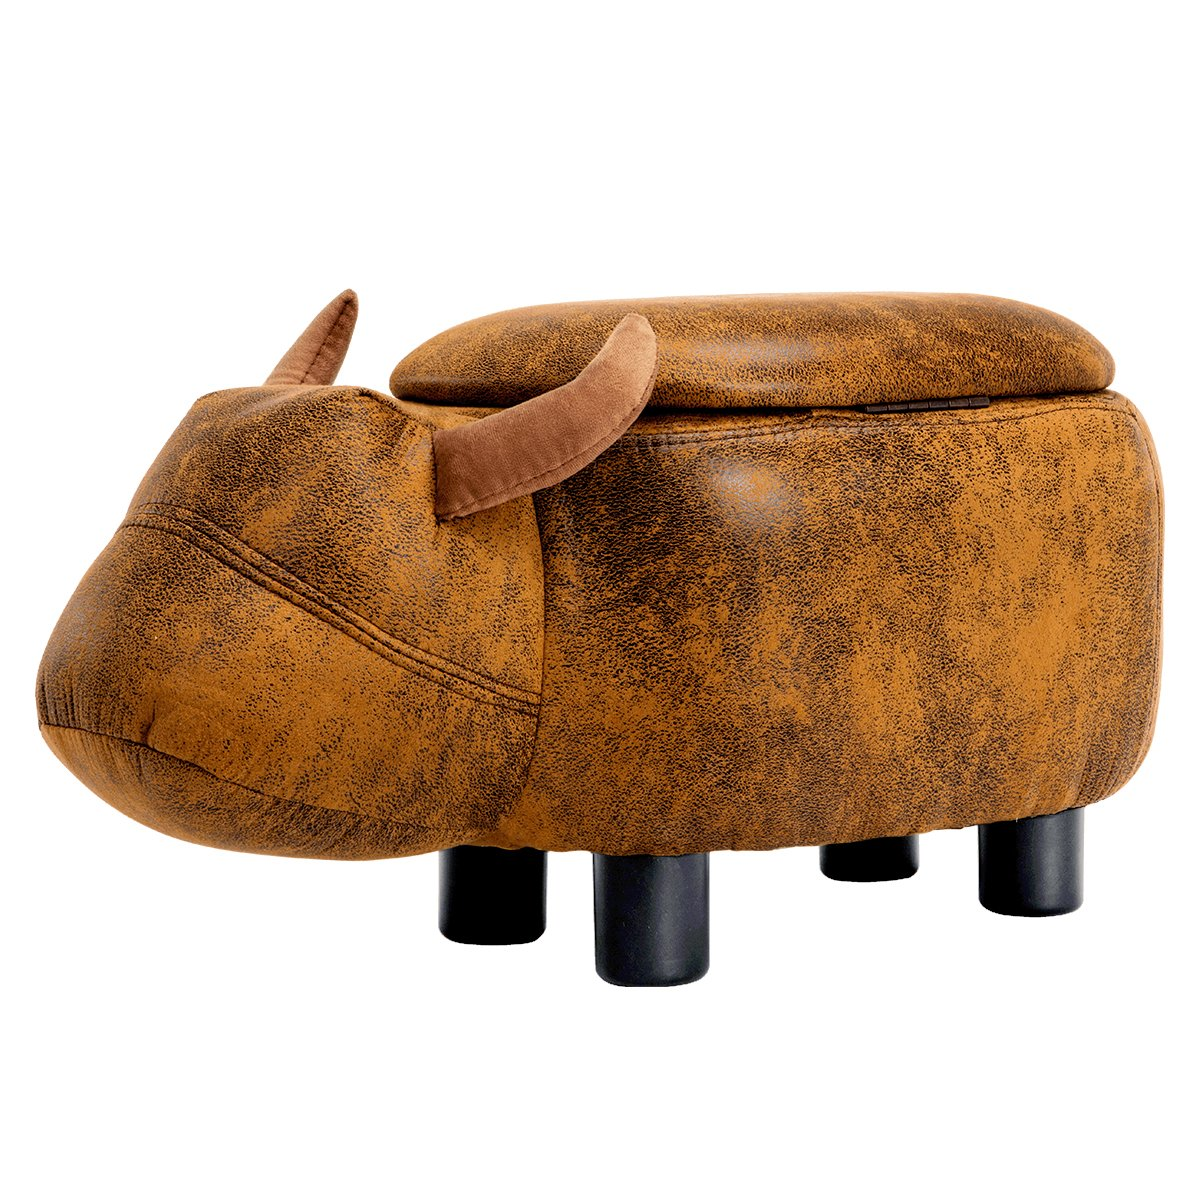 Guteen Upholstered Ride-on Toy Seat Ottoman Footrest Stool with Vivid Adorable Animal-Like Features (Brown Buffalo) GU002-BROWN